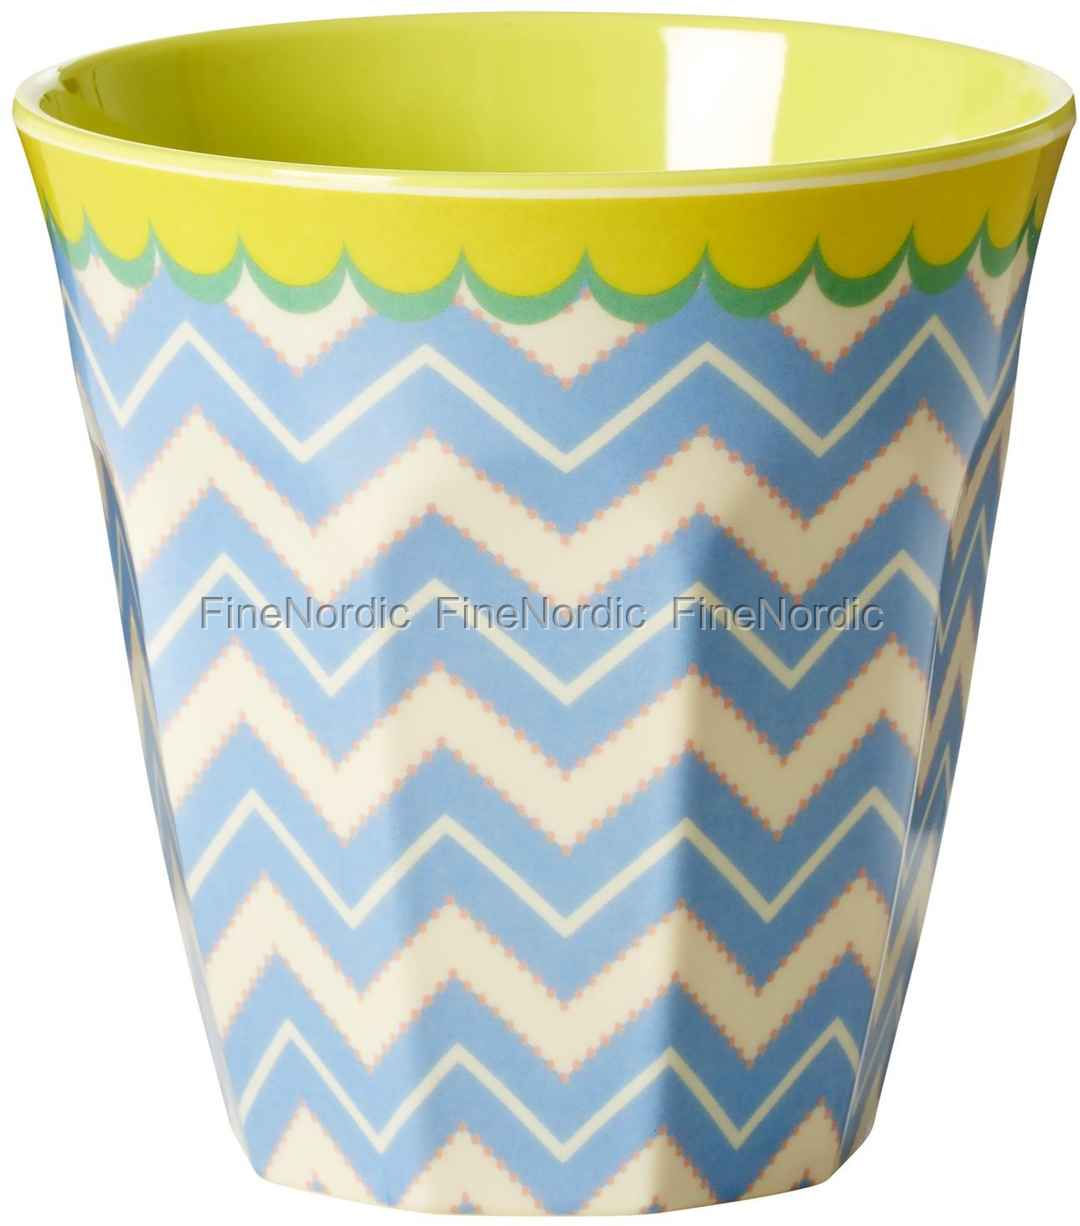 rice melamine medium cup two tone with chevron print